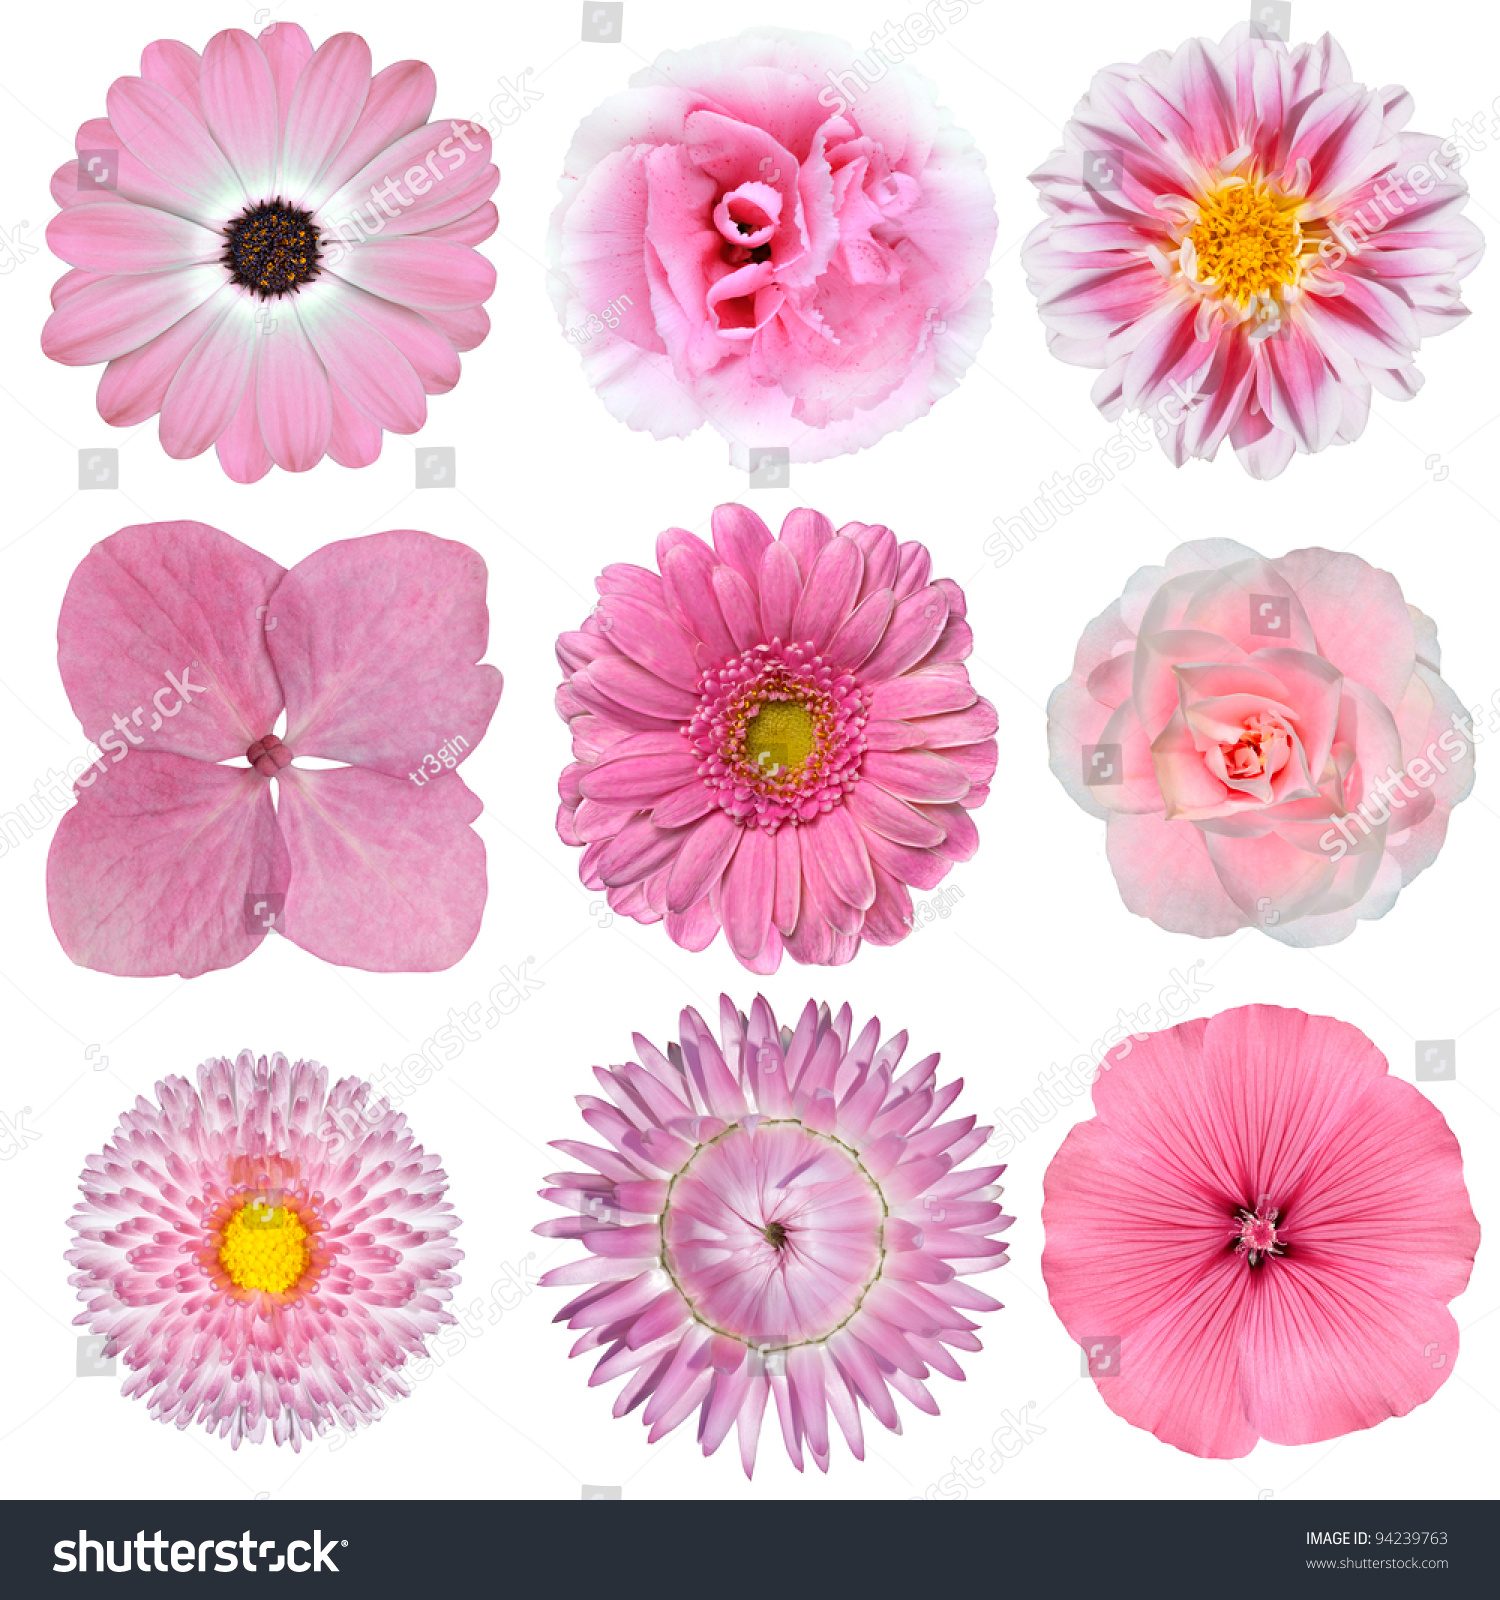 Royalty free collection of pink white flowers 94239763 stock photo collection of pink white flowers isolated on white background selection of daisy carnation mightylinksfo